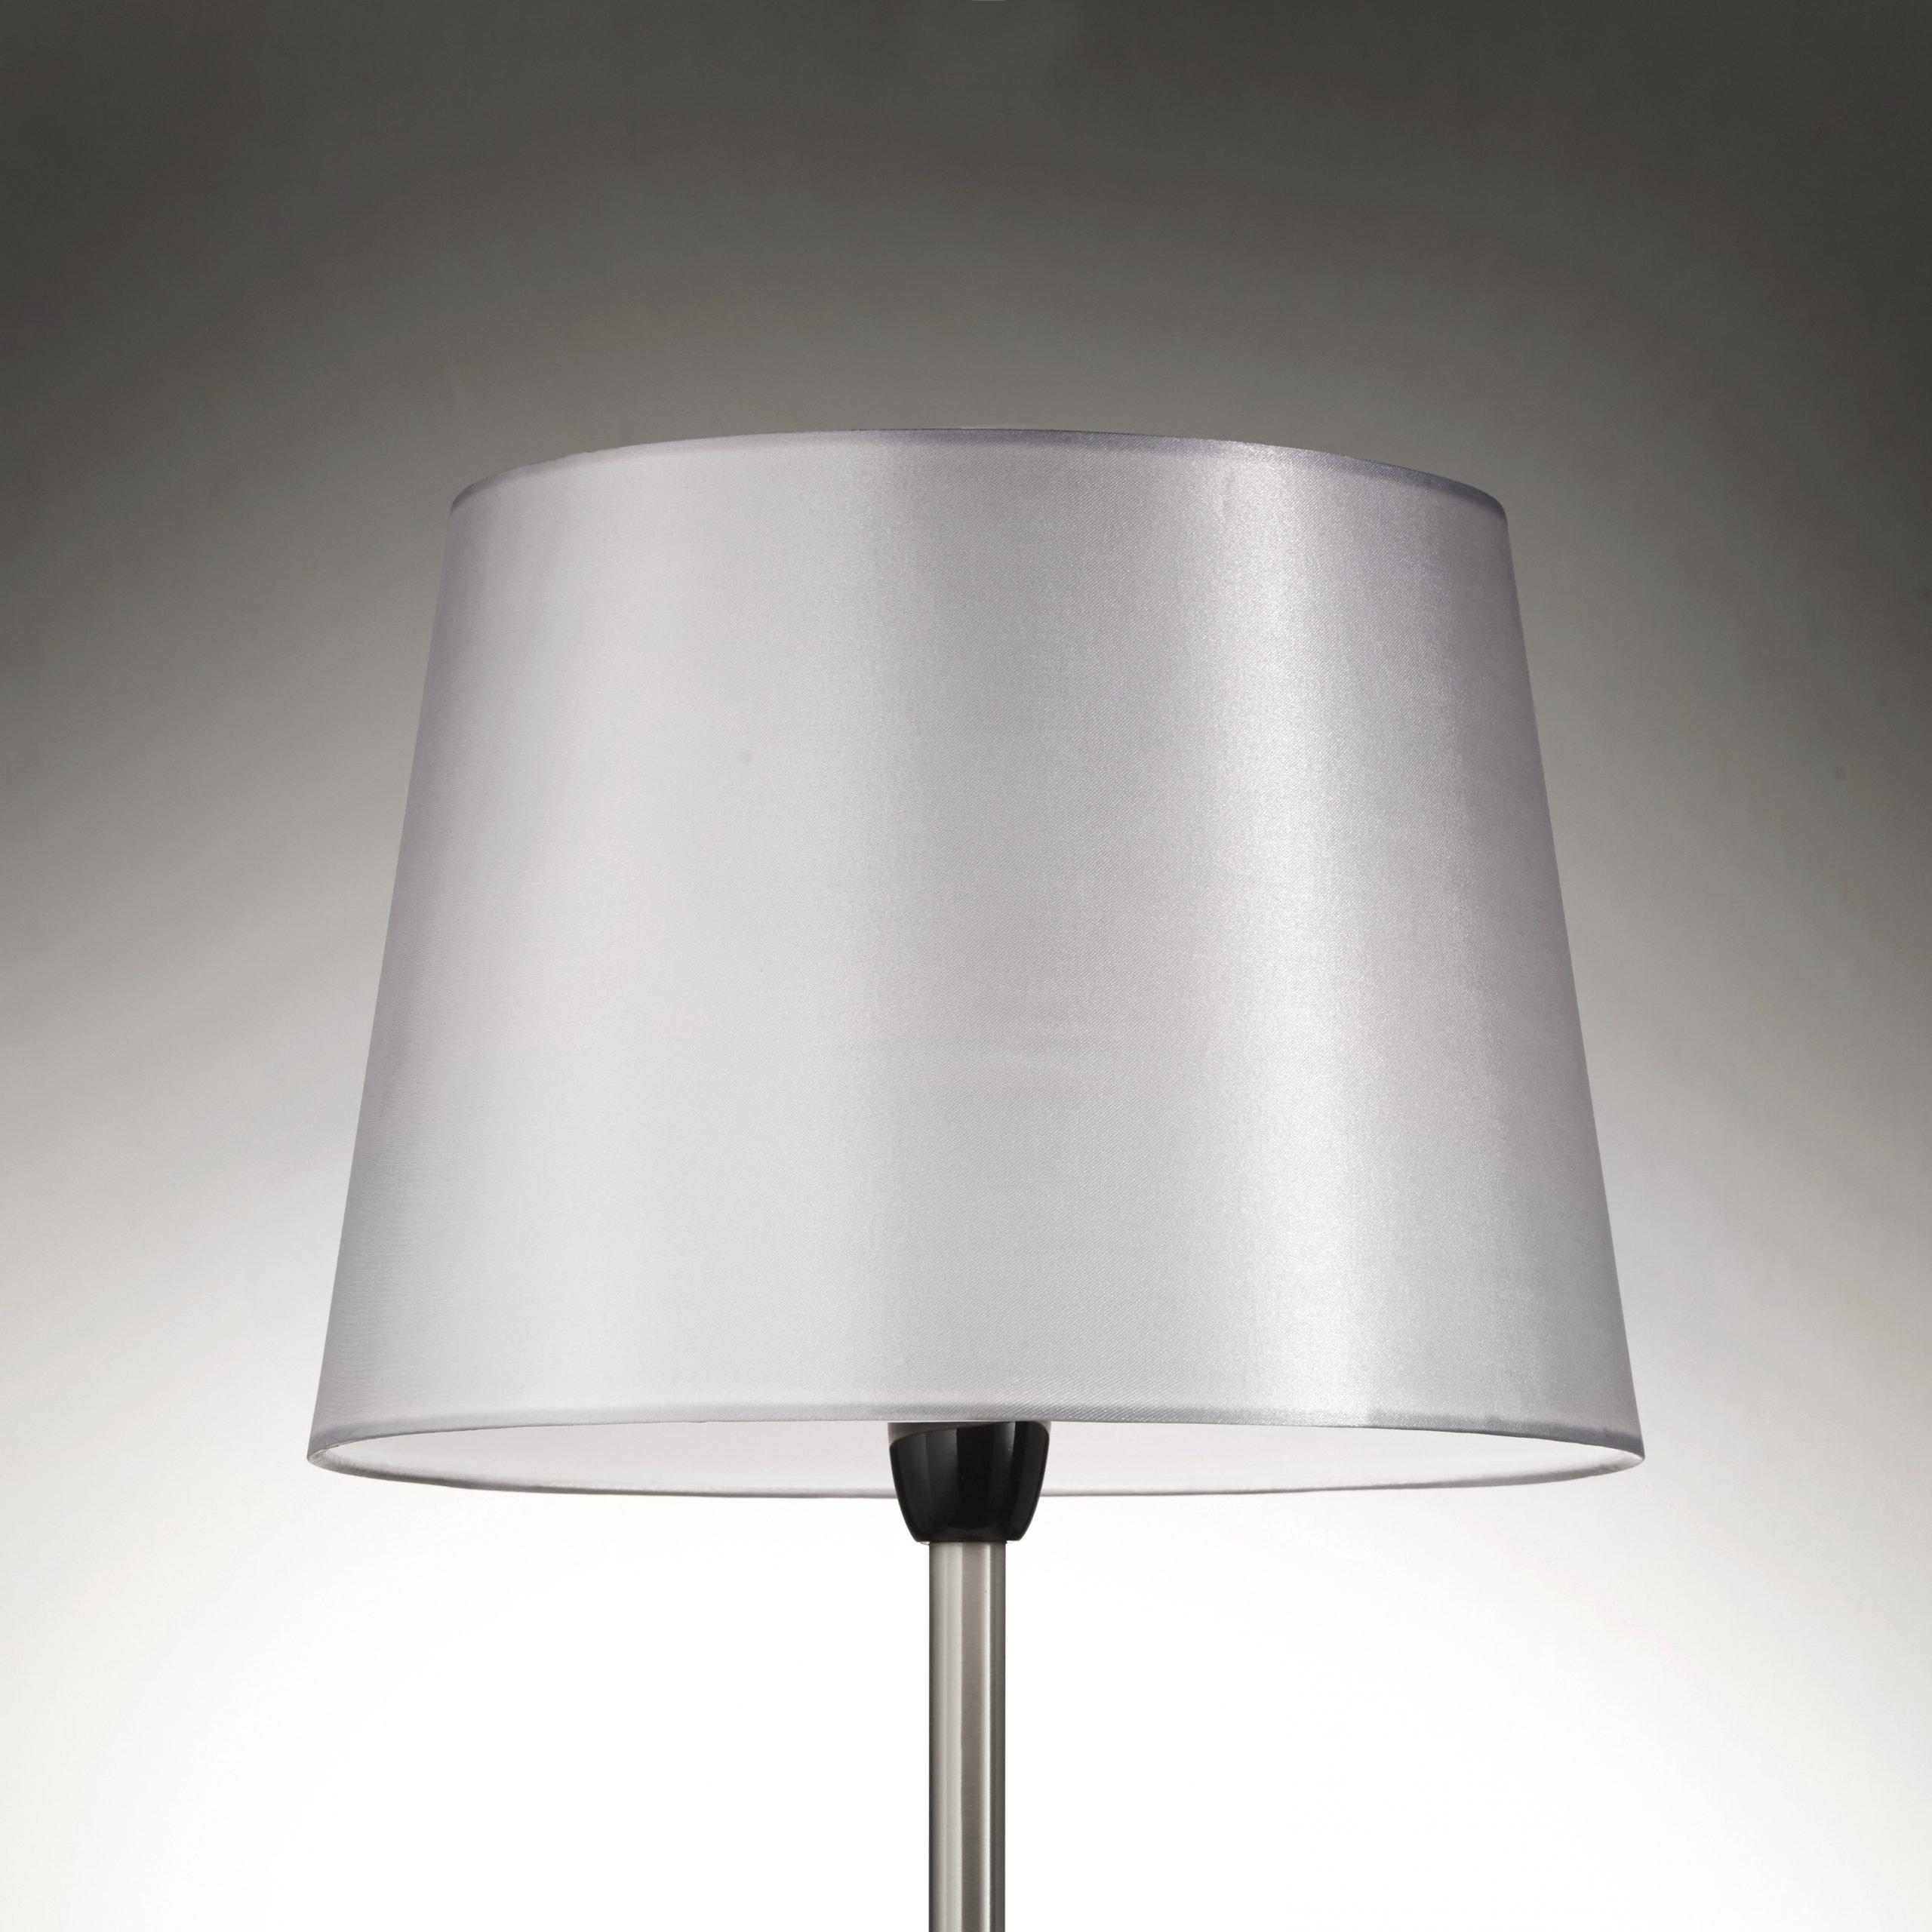 10 Inch Empire Drum Pendant Ceiling Table Lamp Shade Black Cream Grey Teal White Plum Lights And Linen